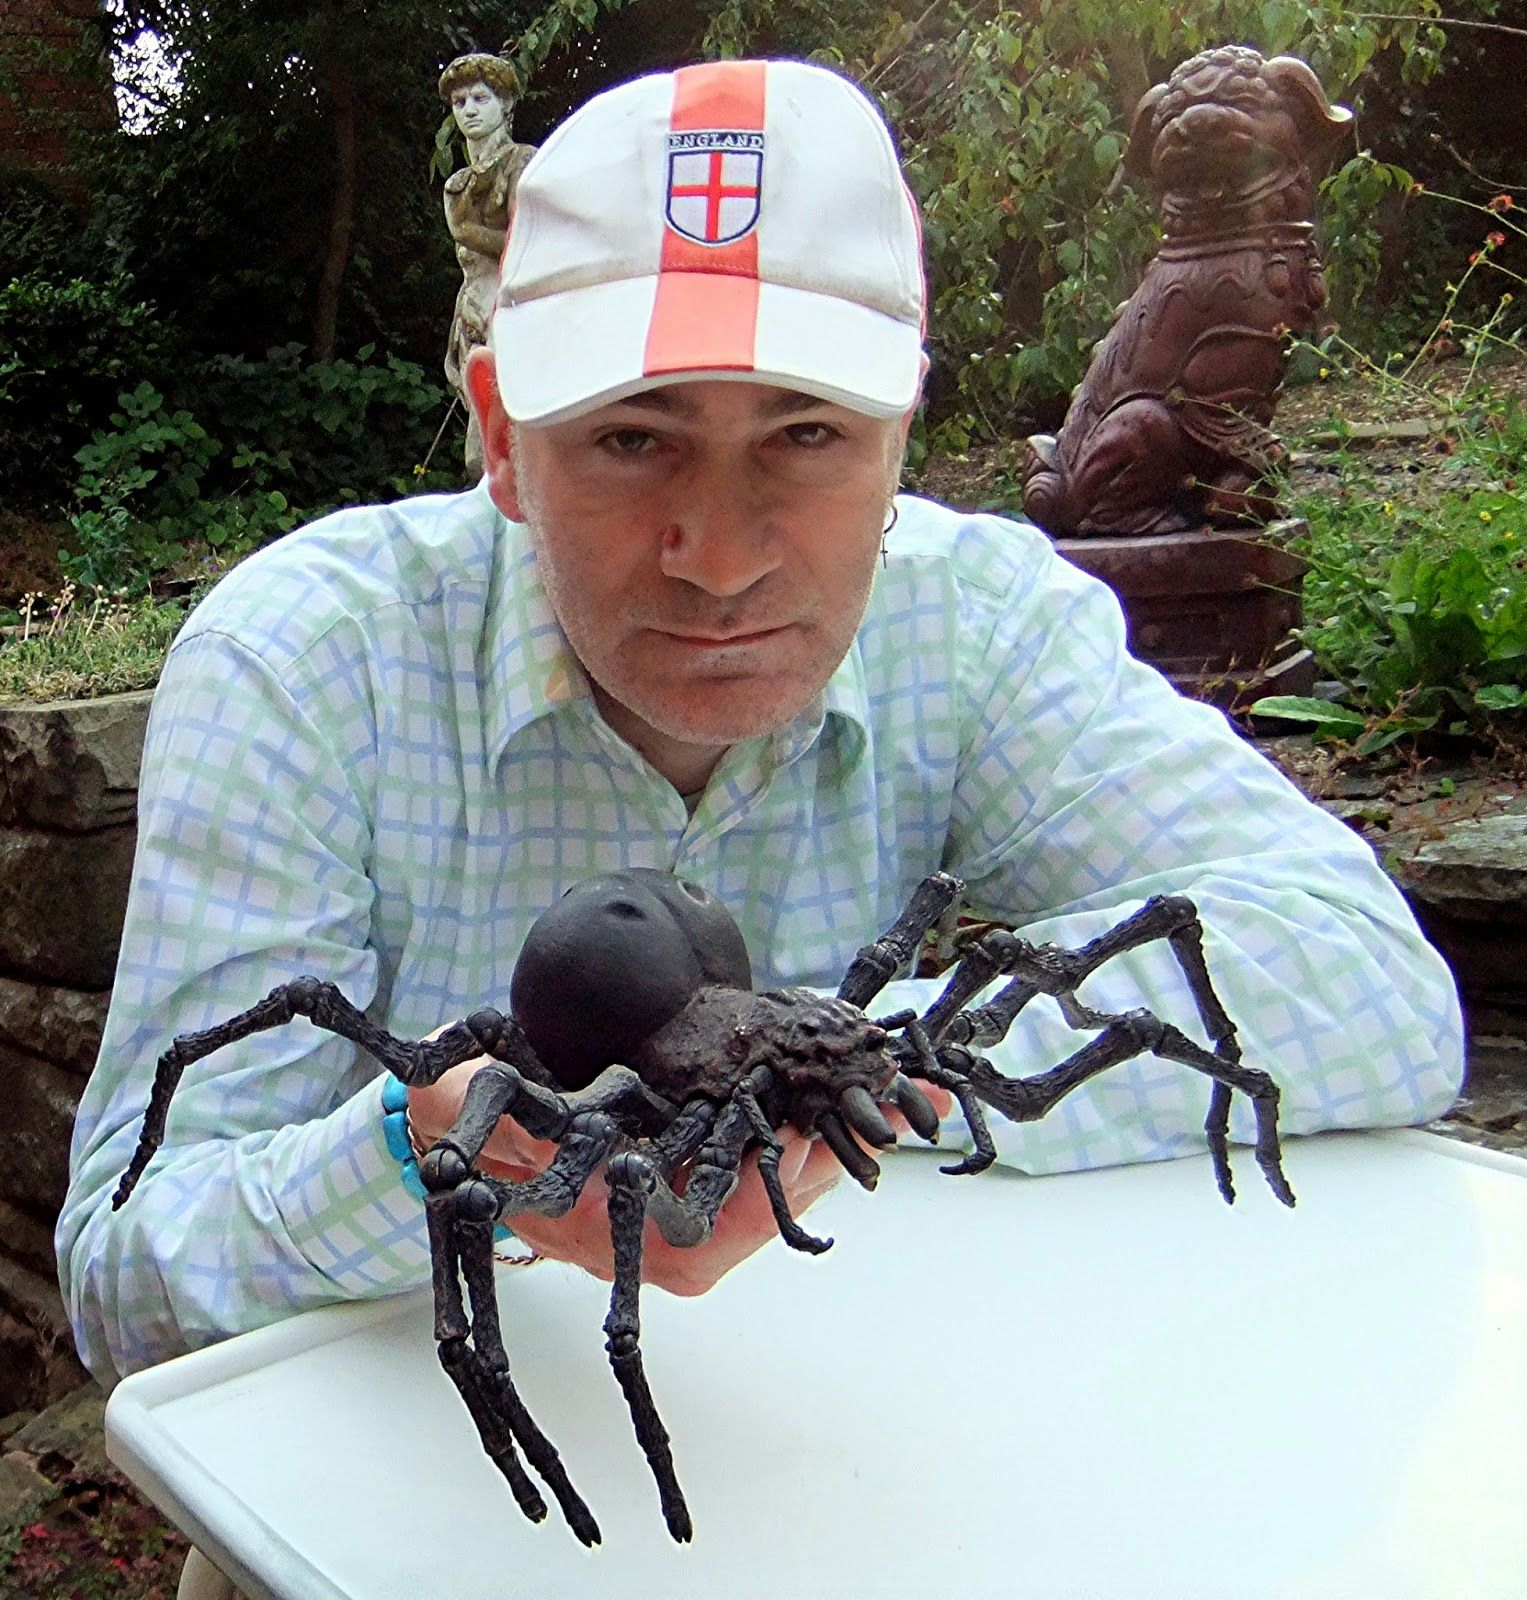 puppy sized spider   ShukerNature: GIANT SPIDERS – MONSTROUS MYTH, OR TERRIFYING TRUTH?